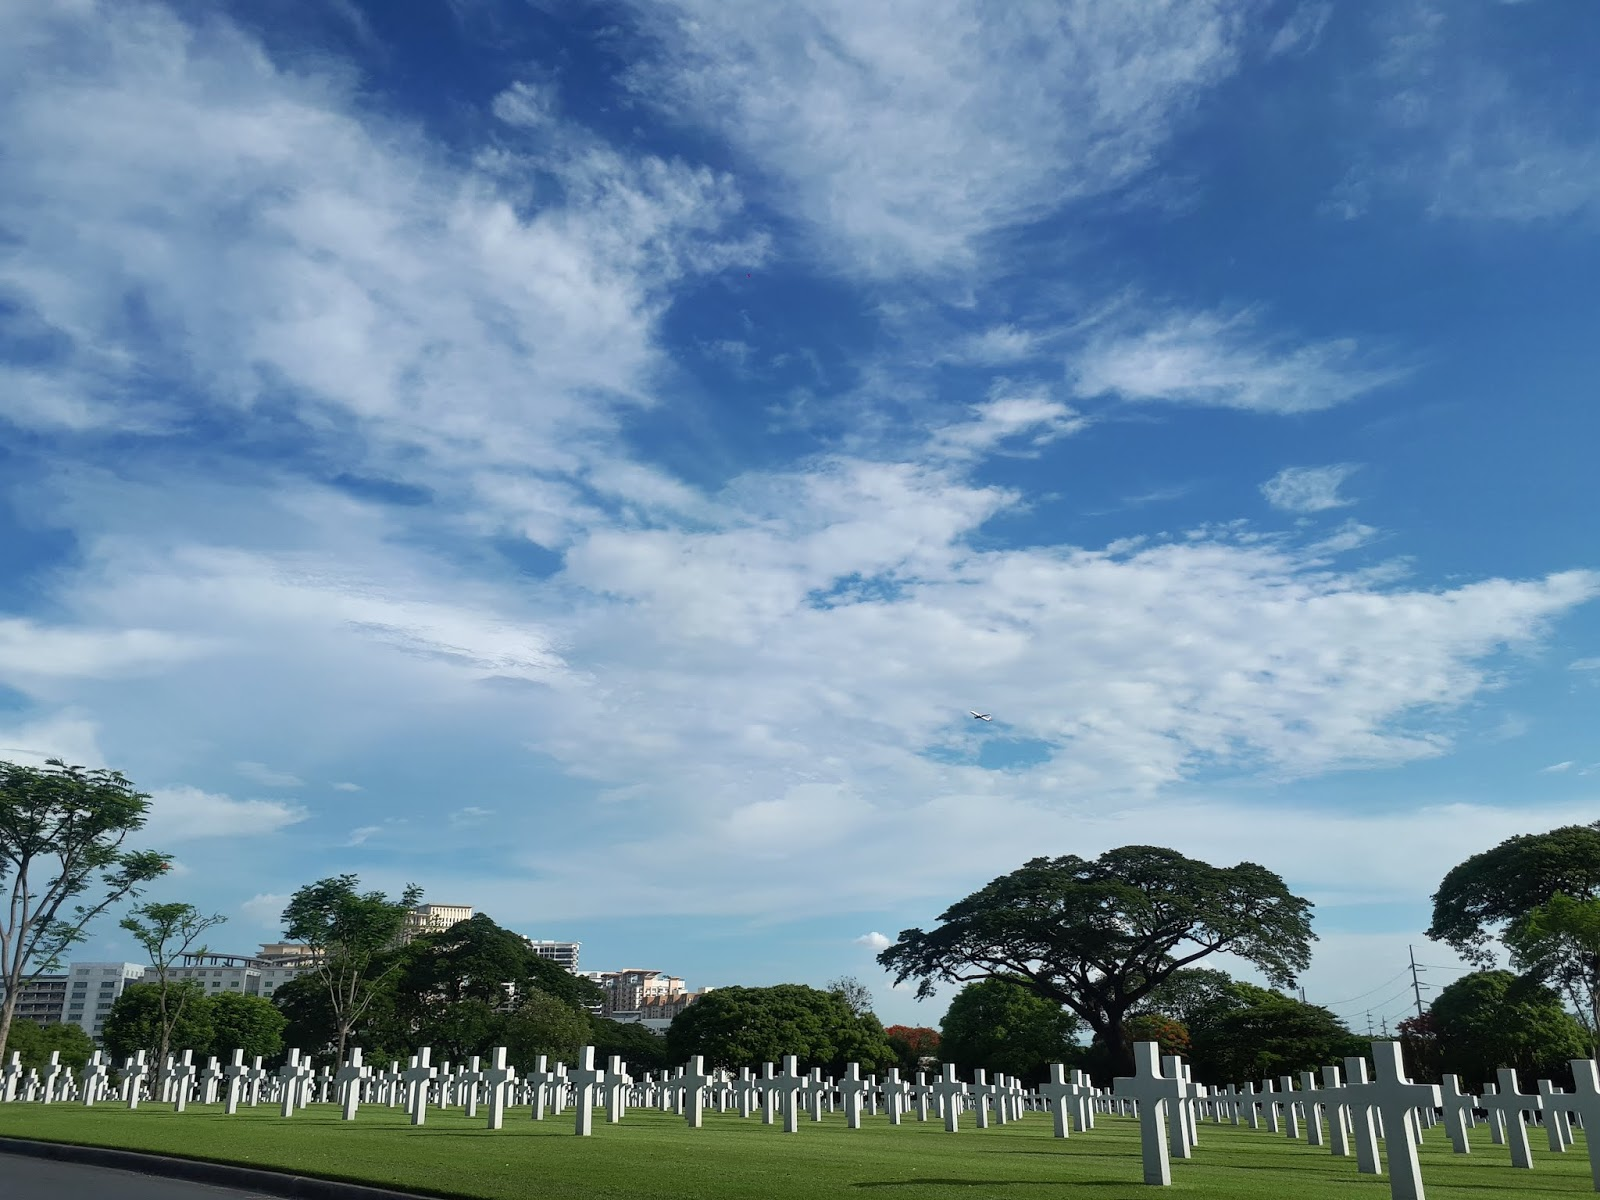 American Cemetery and Memorial BLOG REVIEW